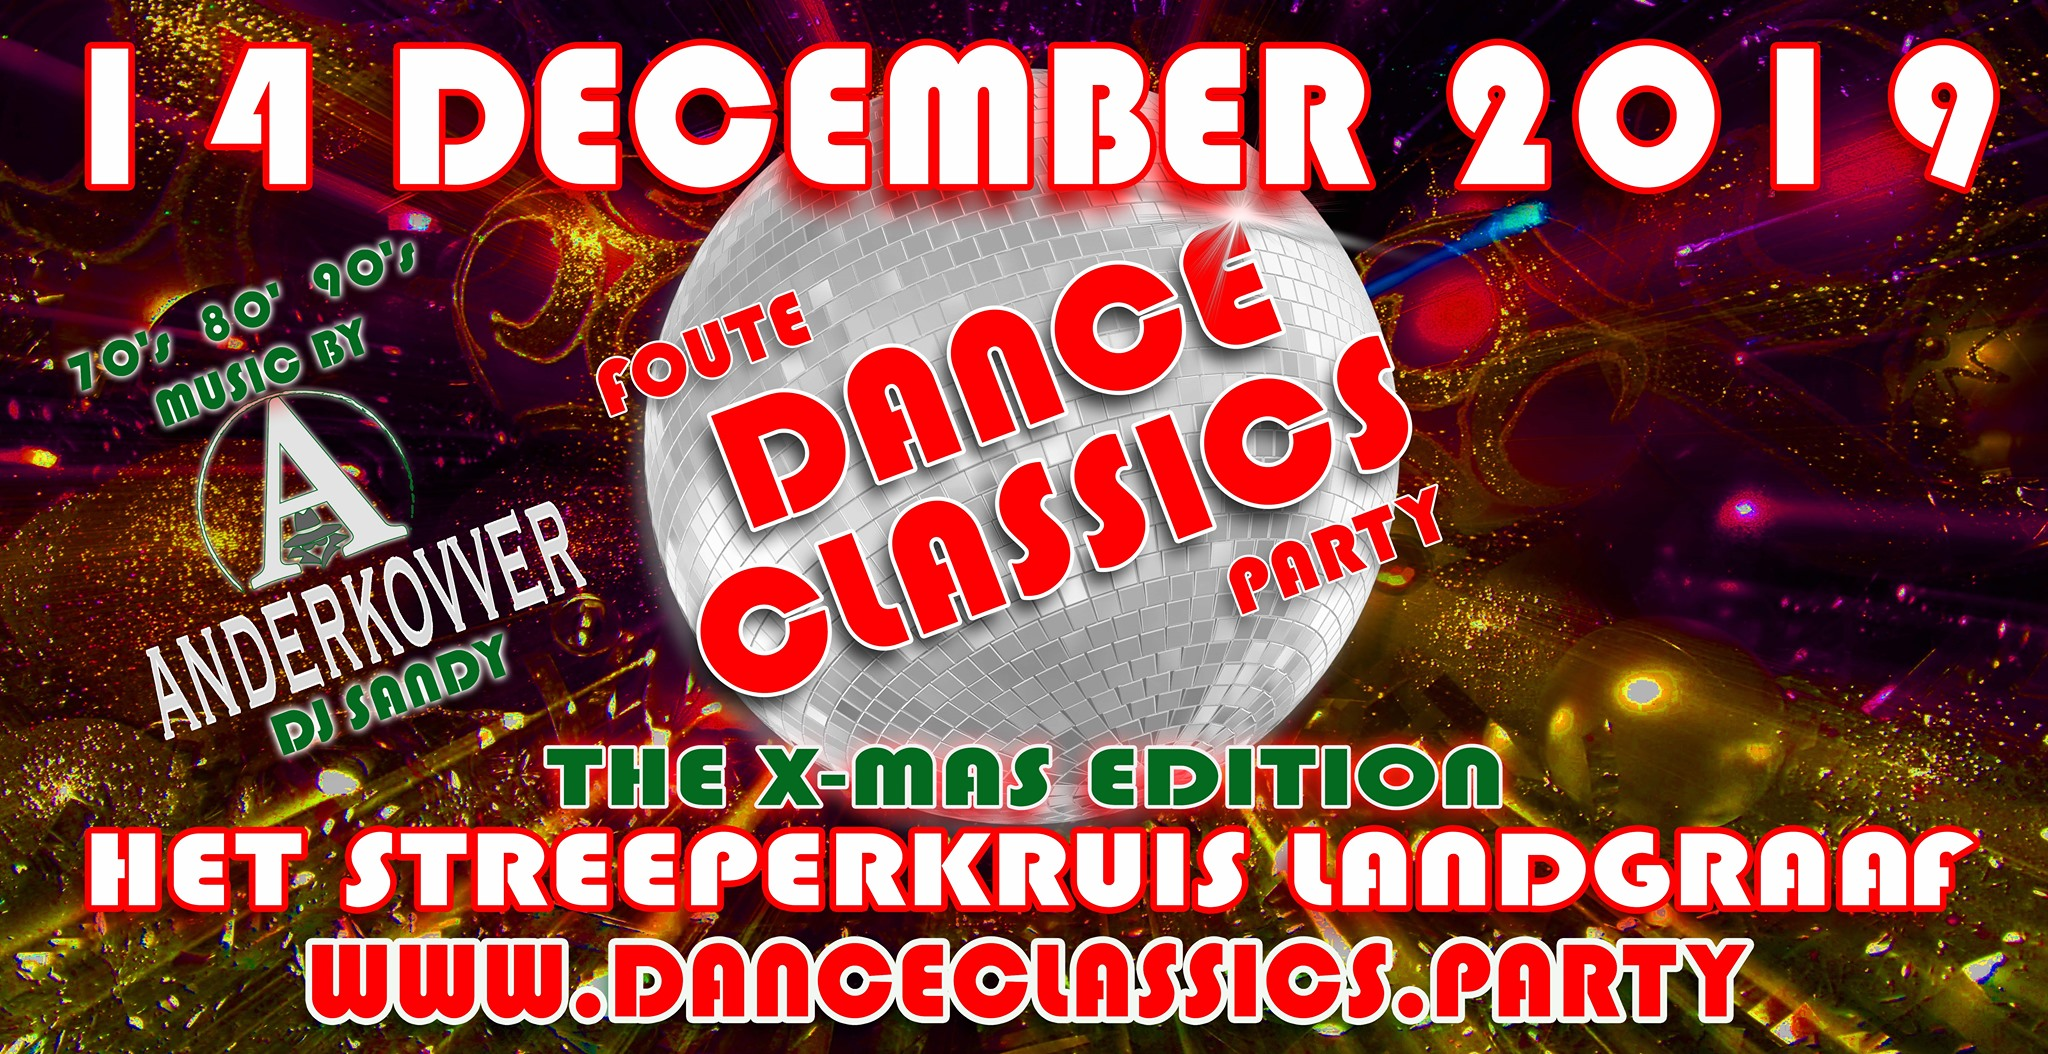 Foute Dance Classics Party Xmas Edition